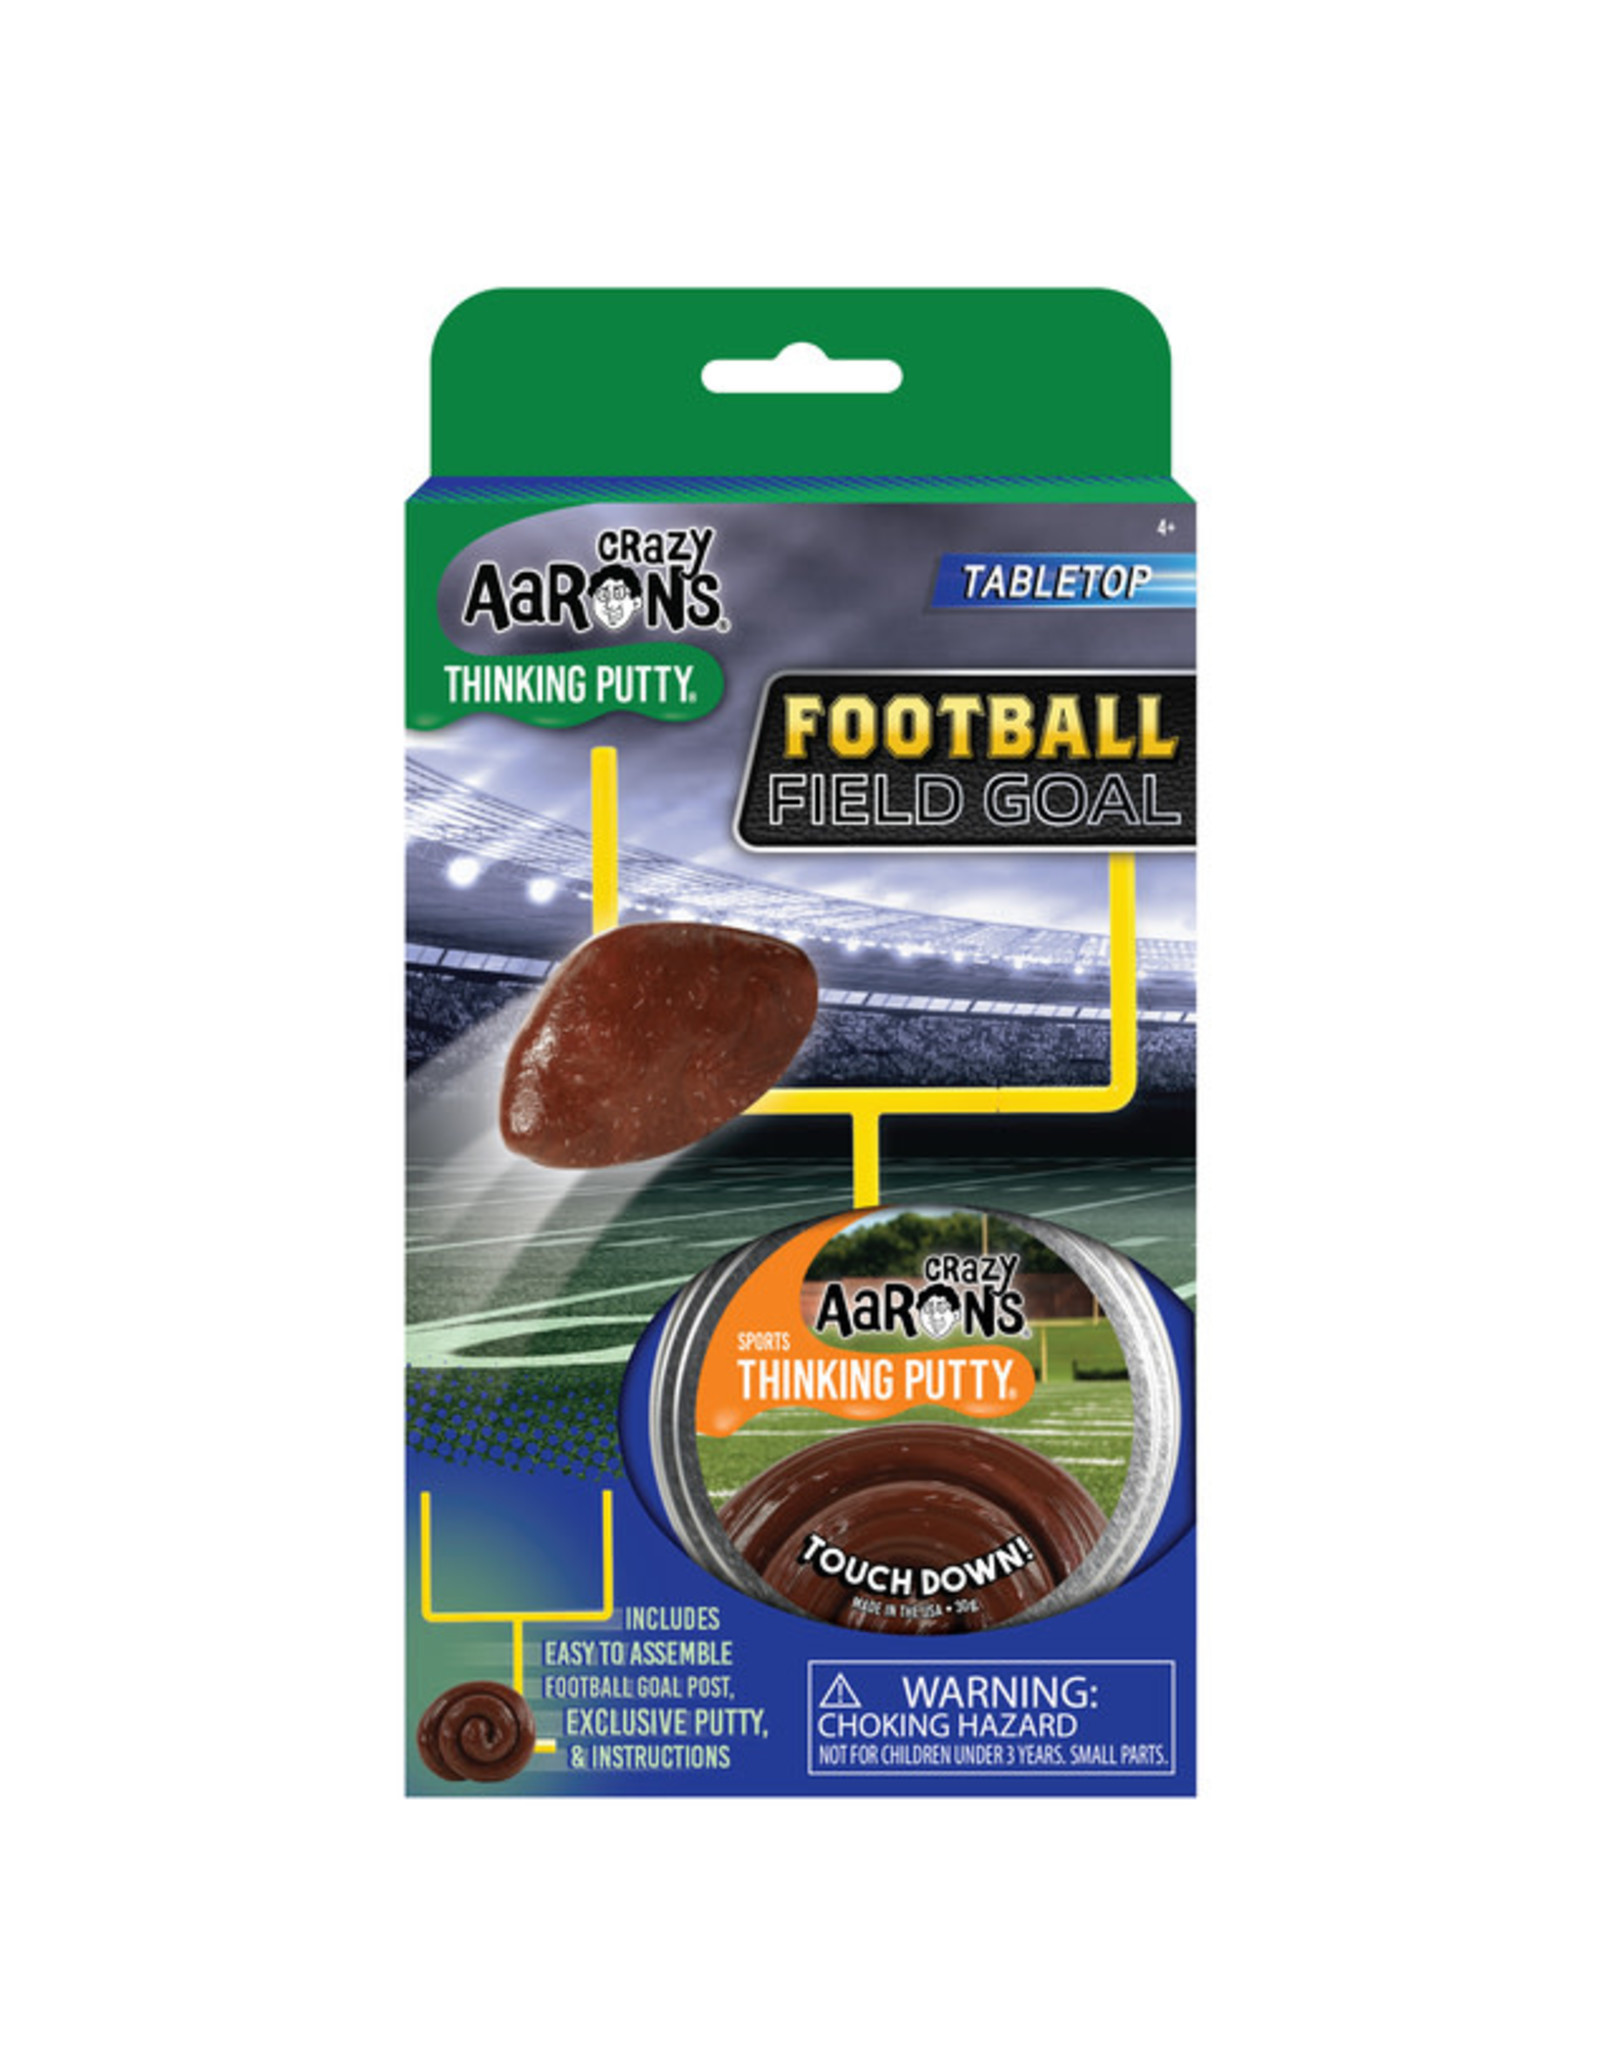 Crazy Aaron's Crazy Aaron's Sports Putty - Football Field Goal Touchdown!